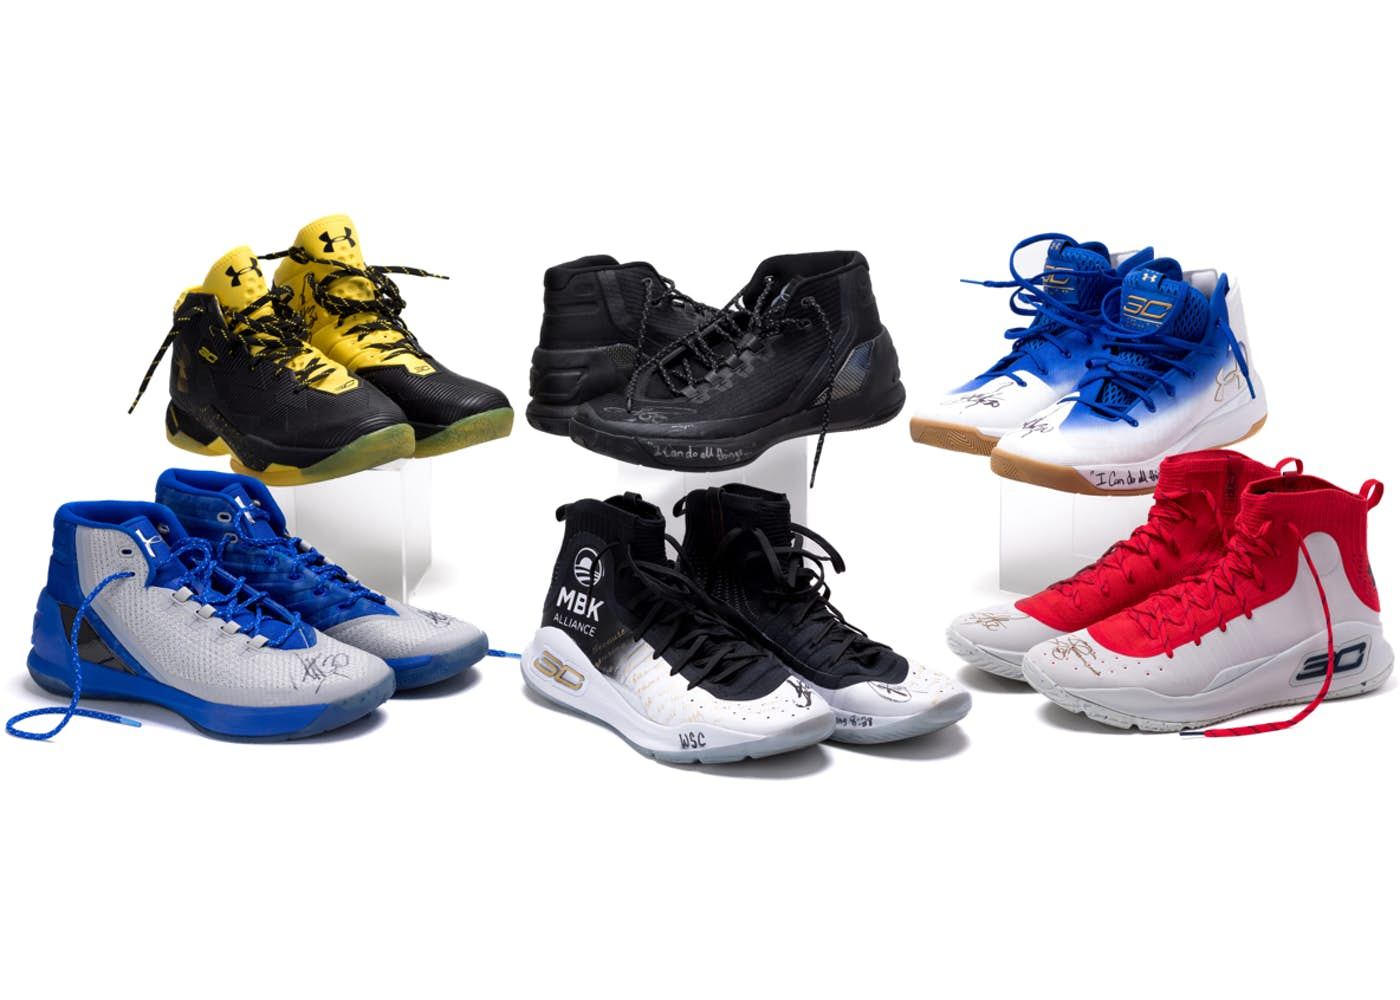 01c21b9e The Curry Family Foundation and StockX Partner for Charity and Chance to  Win 1-of-1 Sneakers